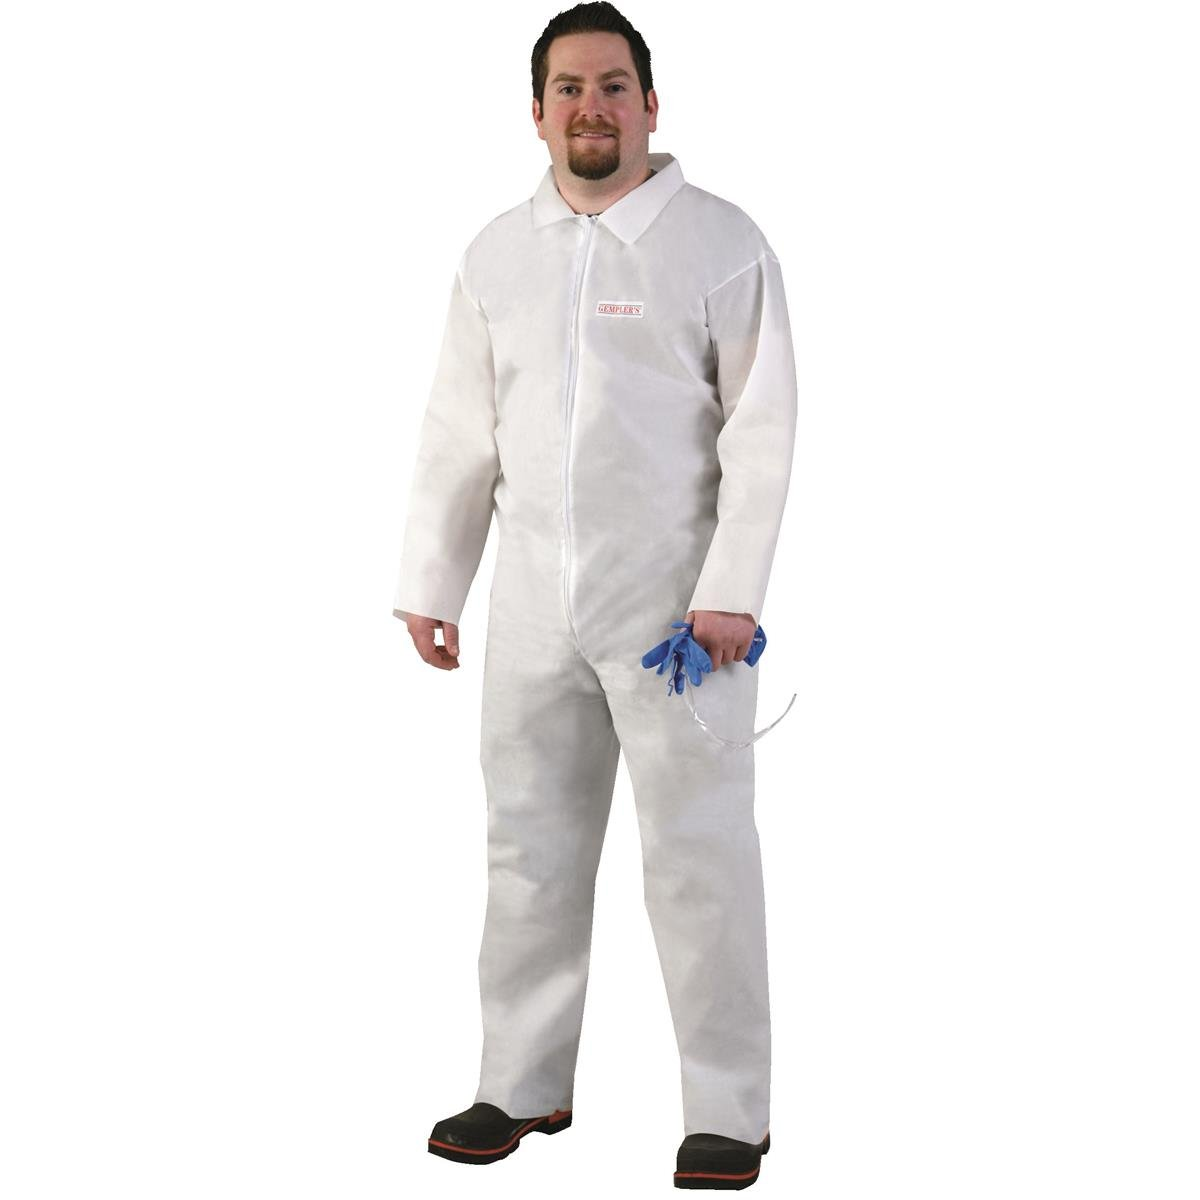 GEMPLER'S UNHOODED General Purpose Advanced Tri-Laminate Breathable Protective Coveralls (Box of 10) (Size 3XL / Color White) For Spray Painting, Fertilizer Handling, OPEN WRISTS AND ANKLES